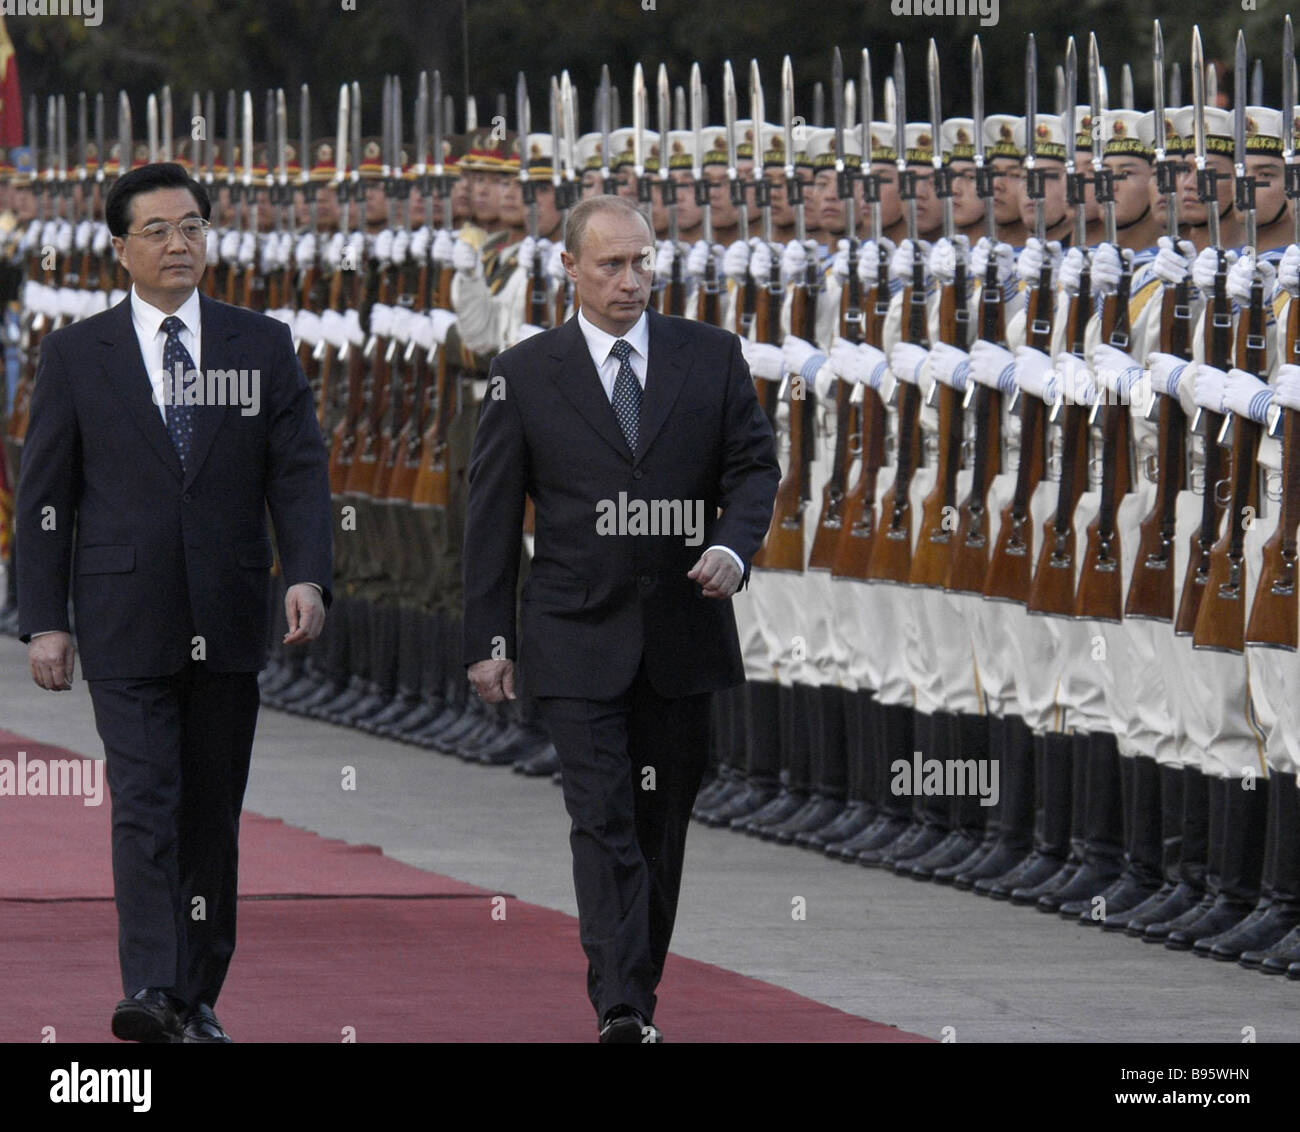 Russian President Vladimir Putin right and his Chinese counterpart Hu Jintao during their official meeting in China - Stock Image